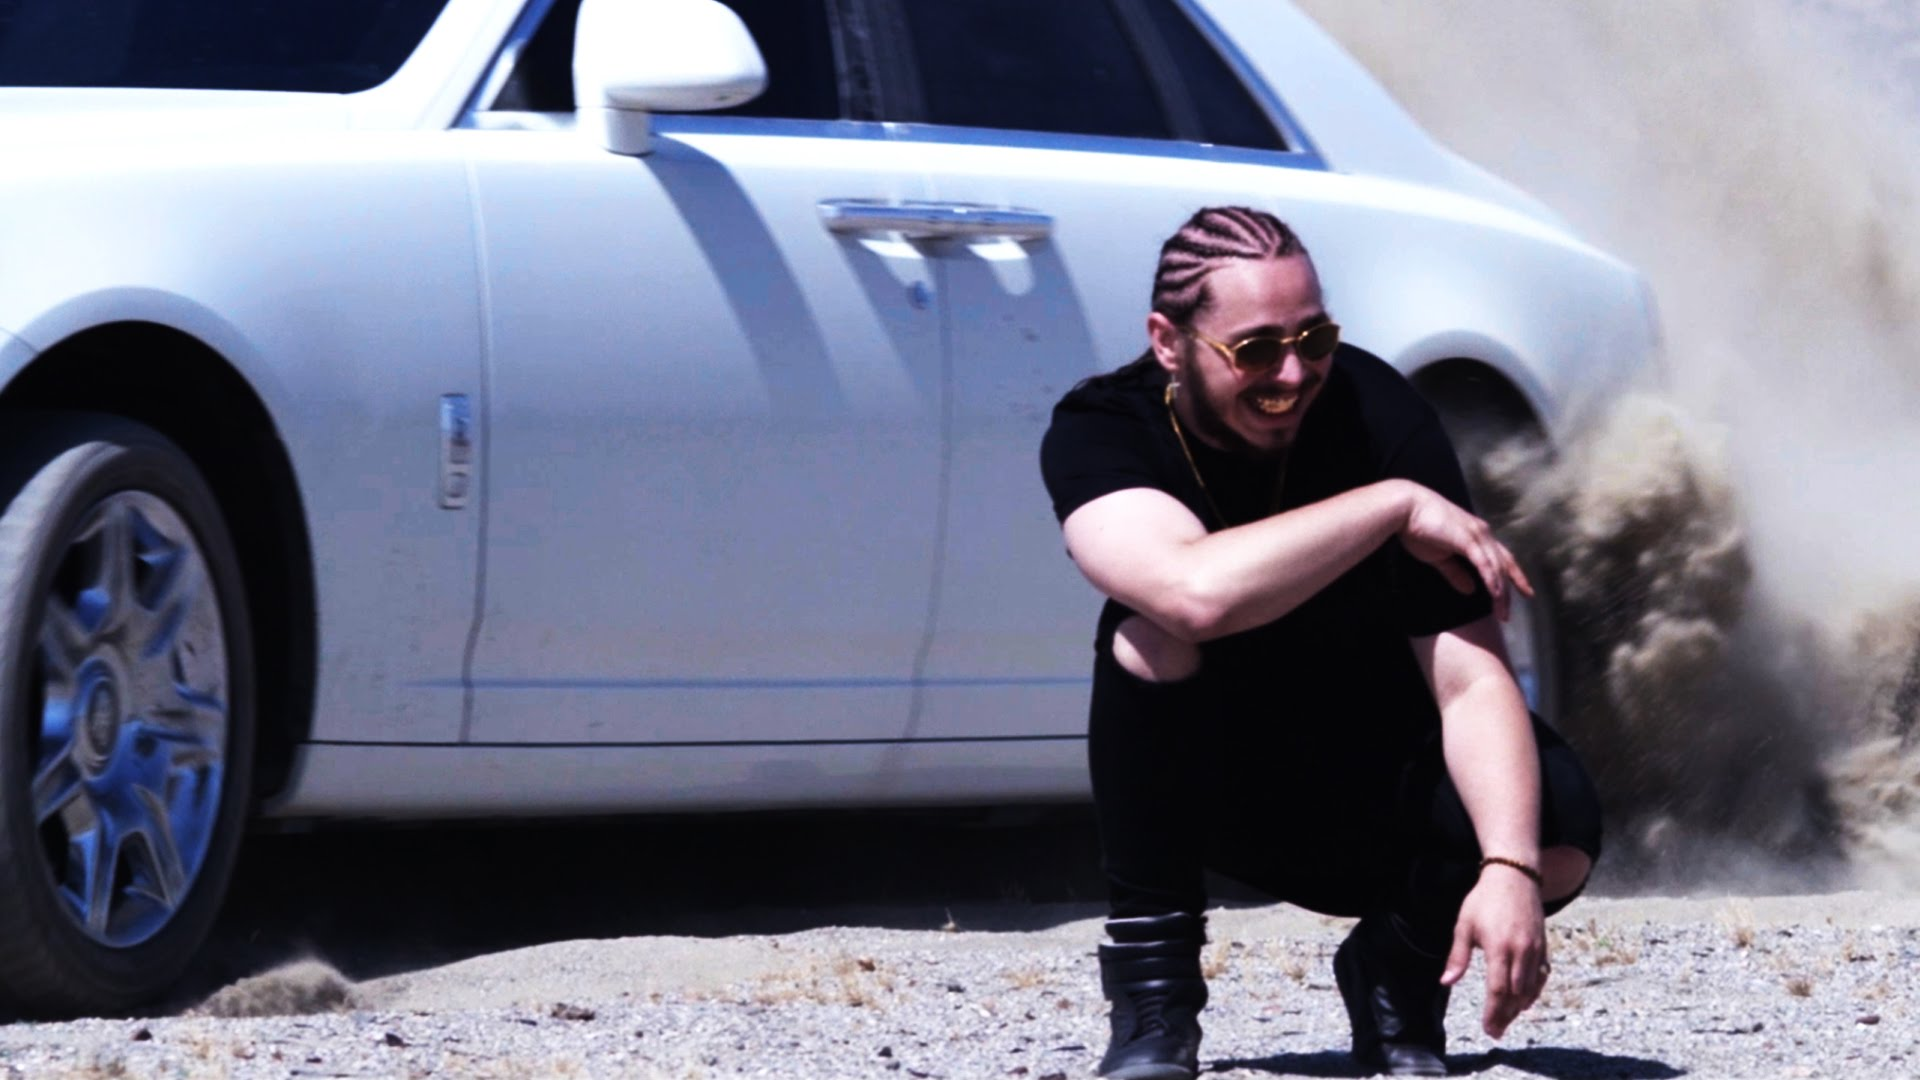 Emerging artist: Post Malone scores with debut single with 'White Iverson'